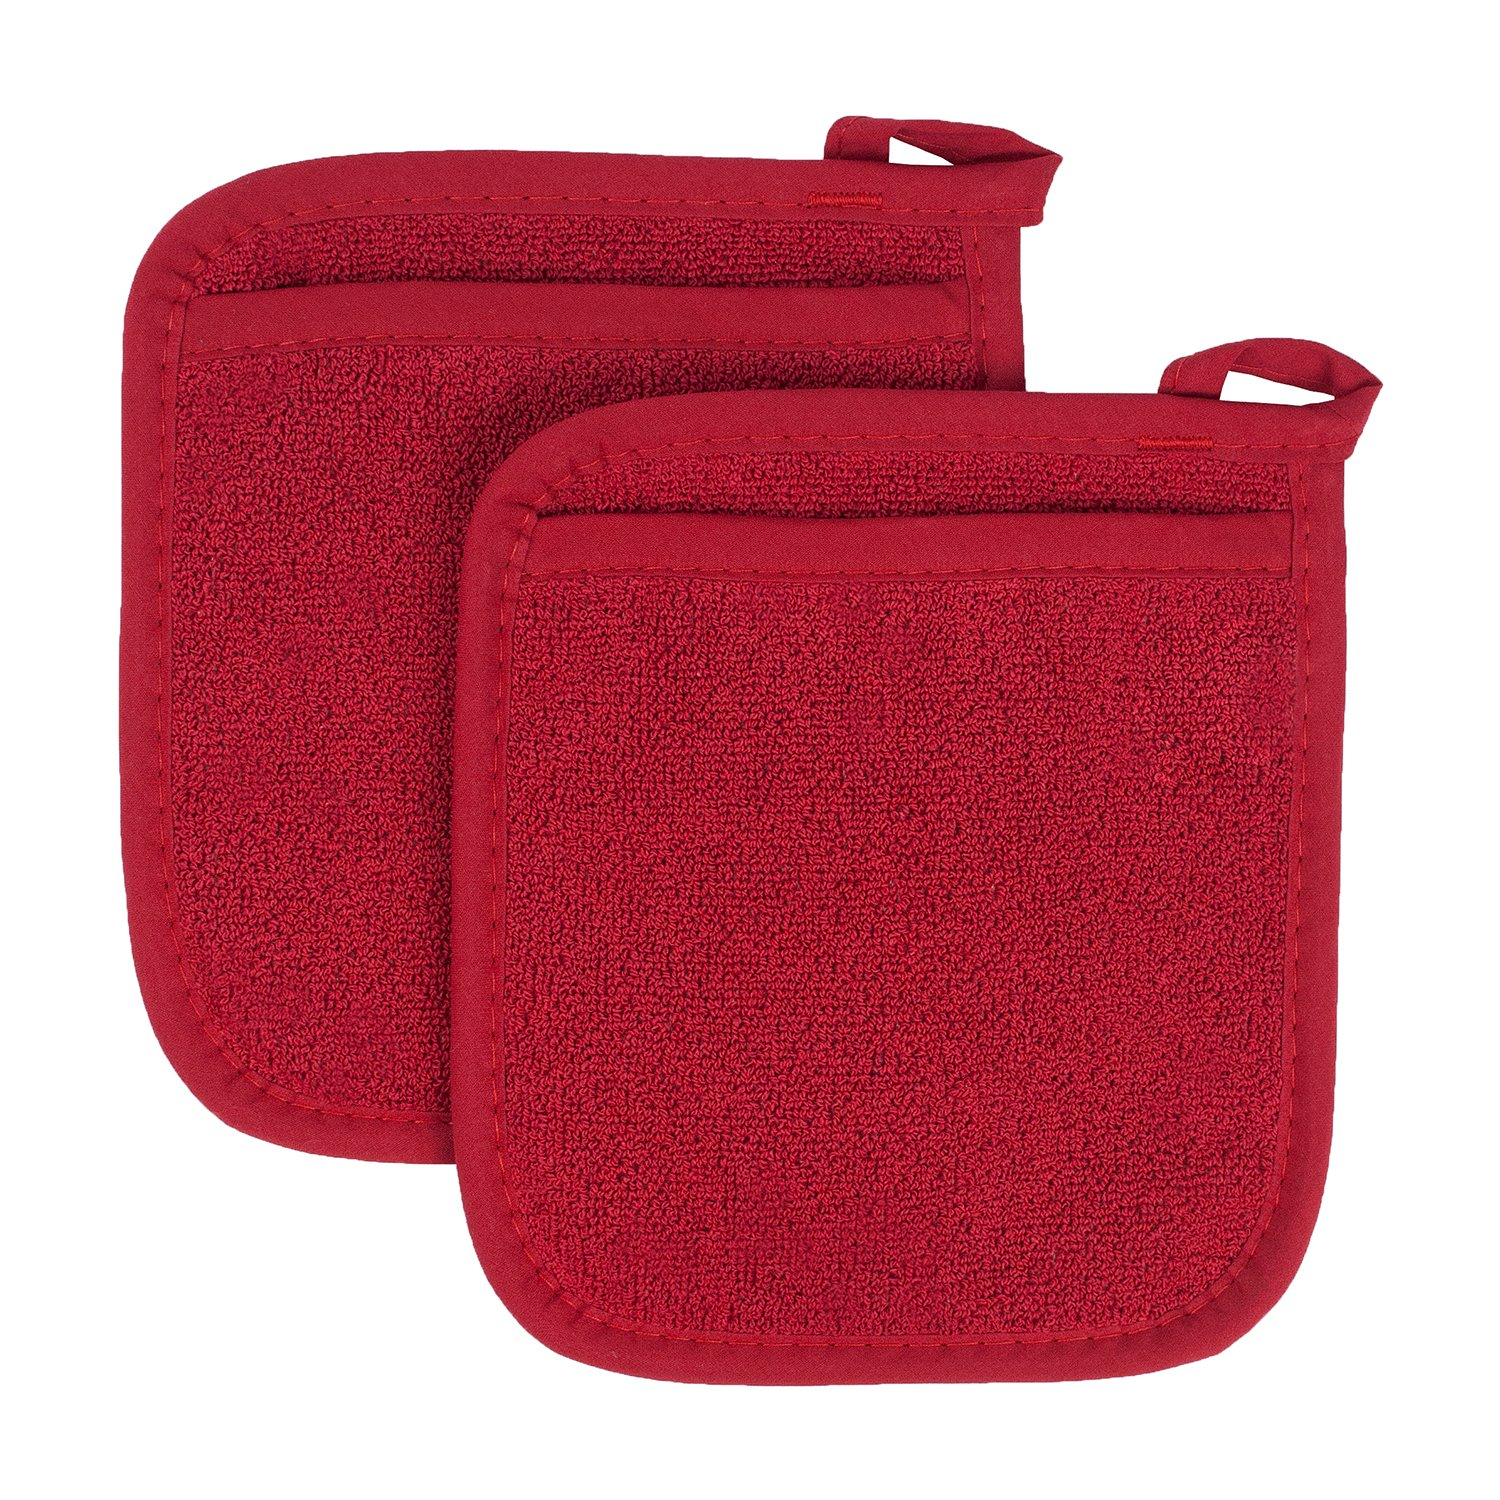 Ritz Royale Collection 100% Cotton Terry Cloth Pot Holder Oven Mitt Set, 2-Piece, Paprika Red